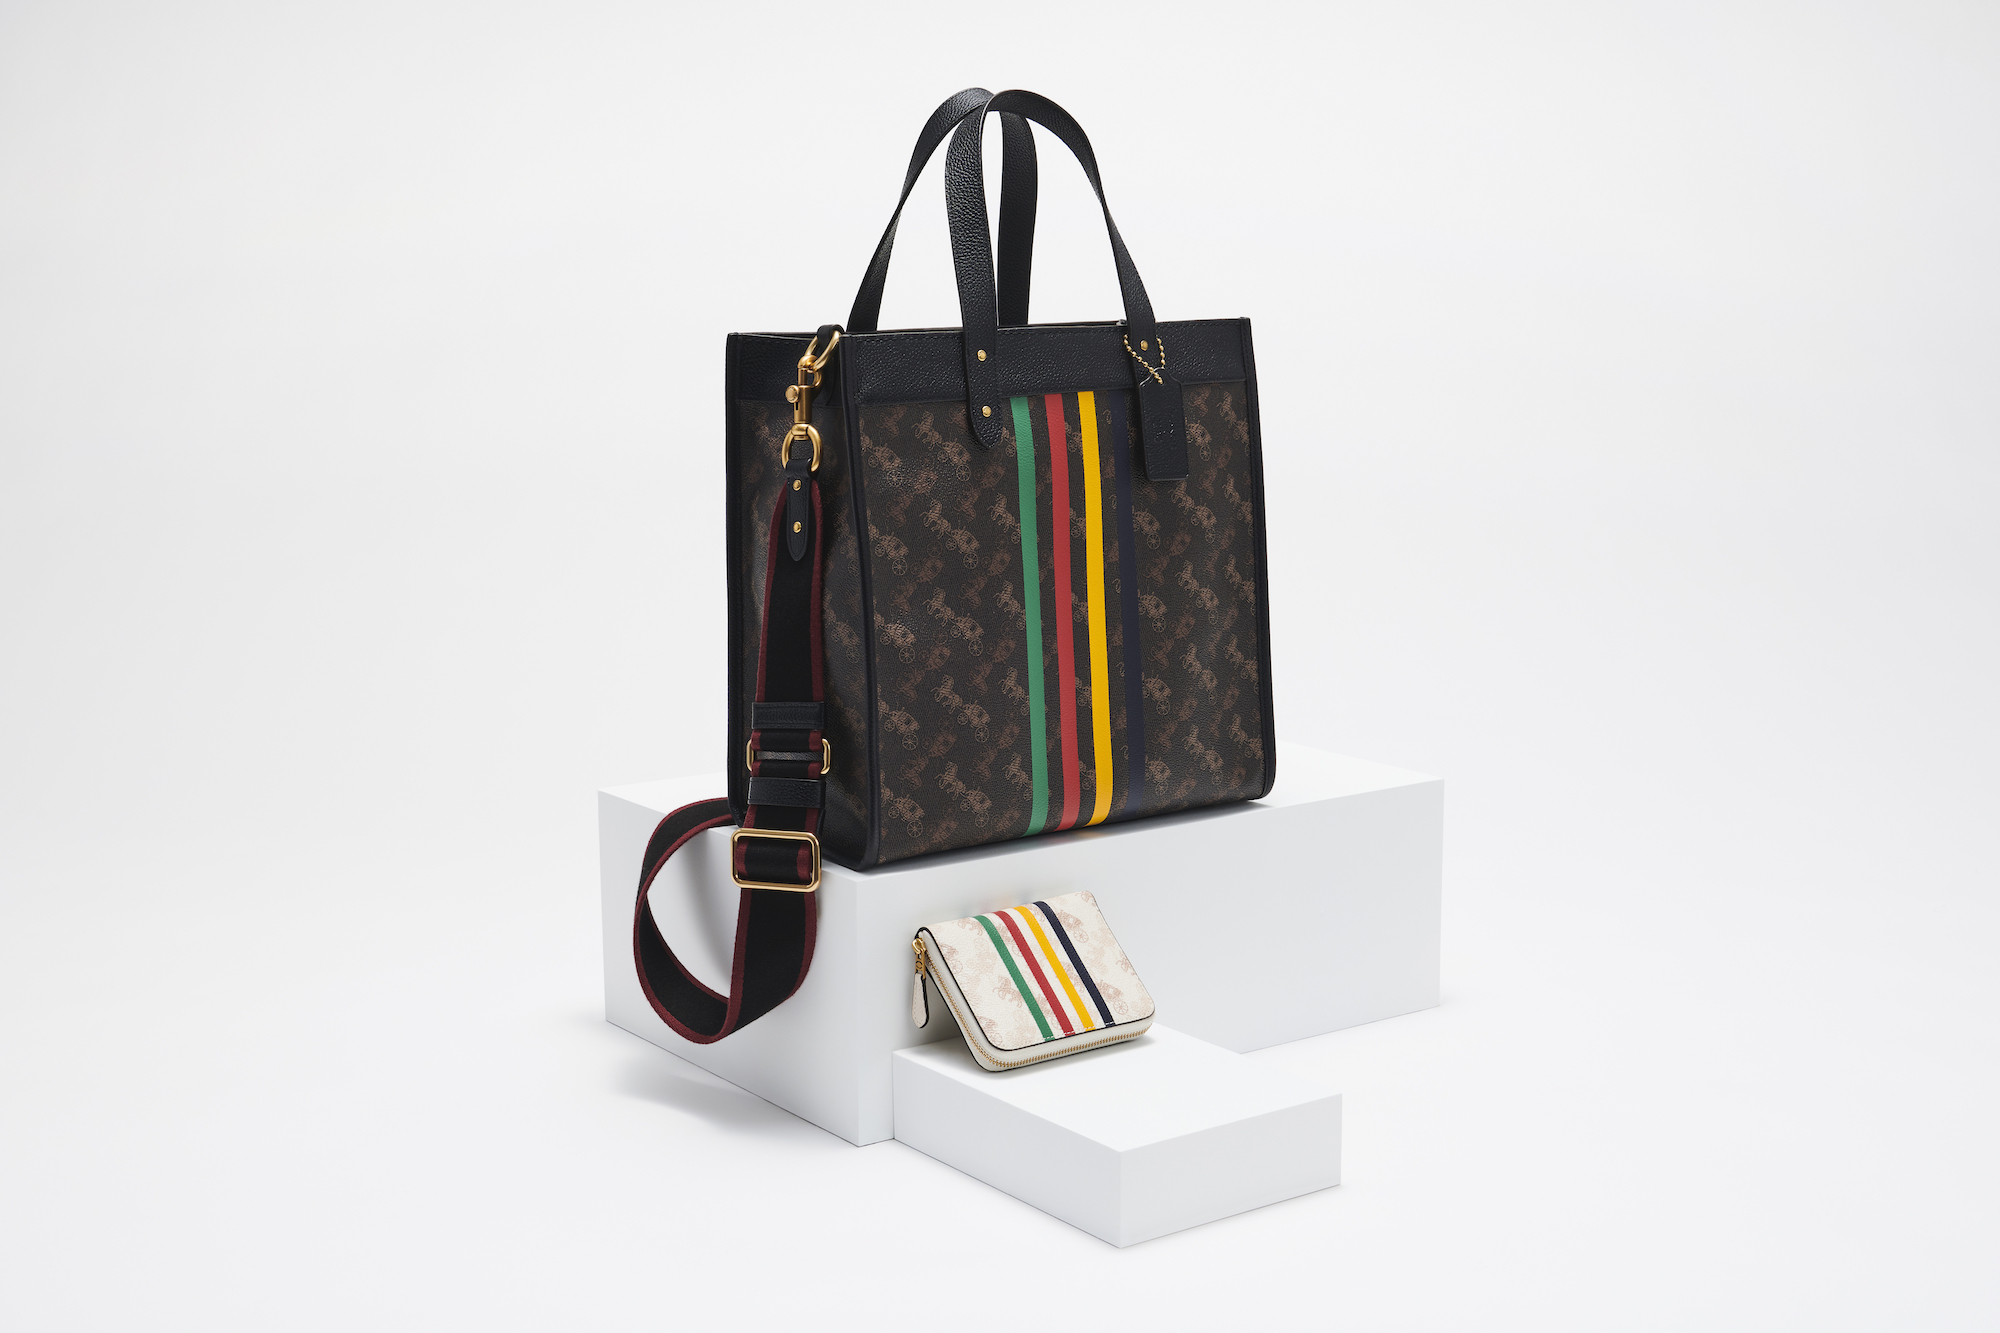 Hudson's Bay and Coach collaborate to launch capsule collection